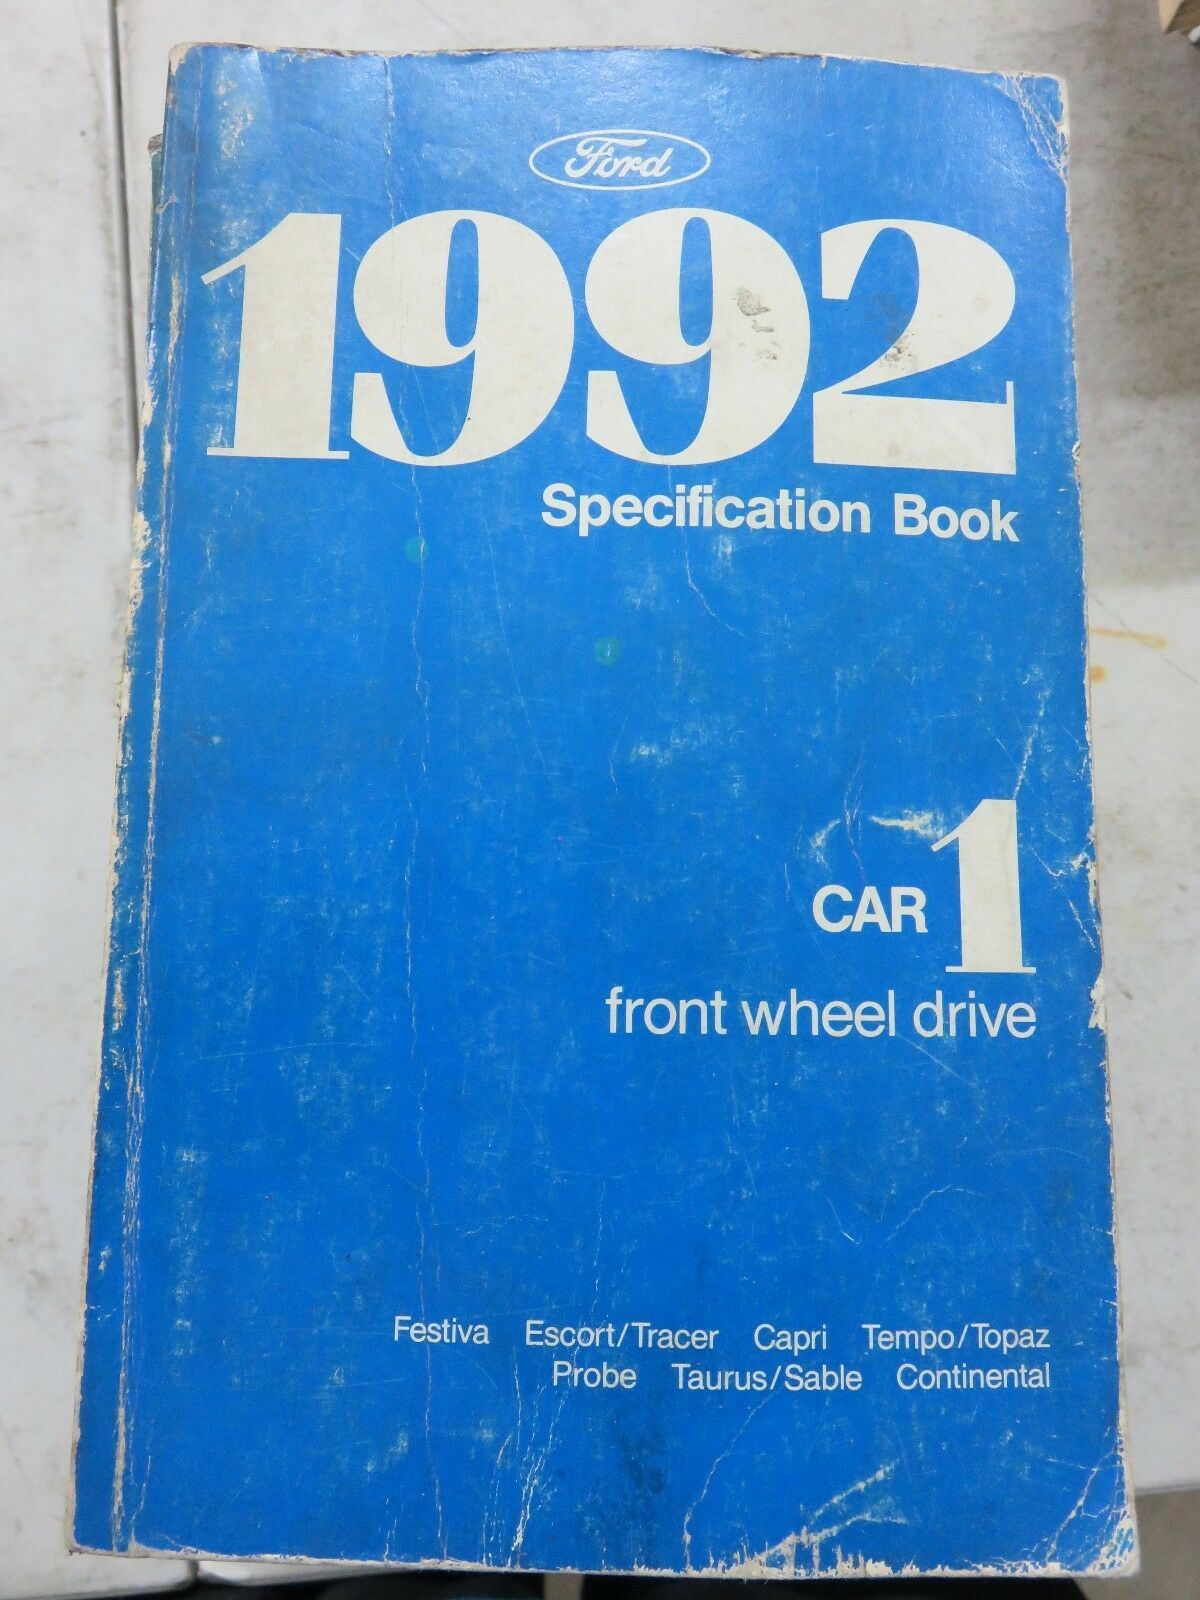 Primary image for 1992 Ford Specification Book Service Manual OEM Car Front Wheel Drive